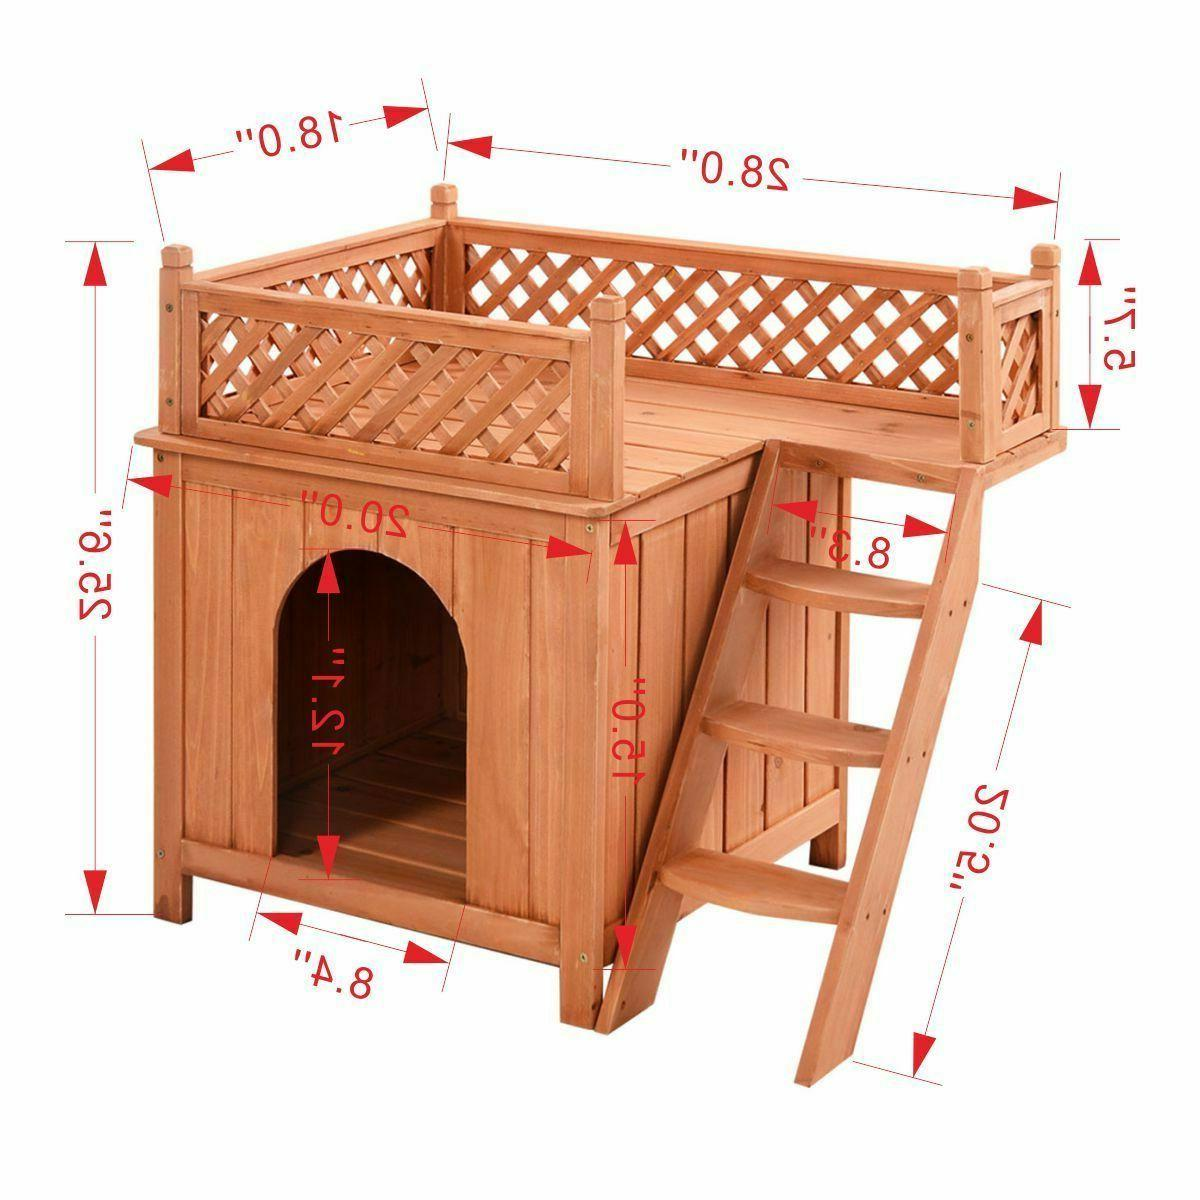 Wood Pet House Wooden & Outdoor Roof Balcony Bed Shelter